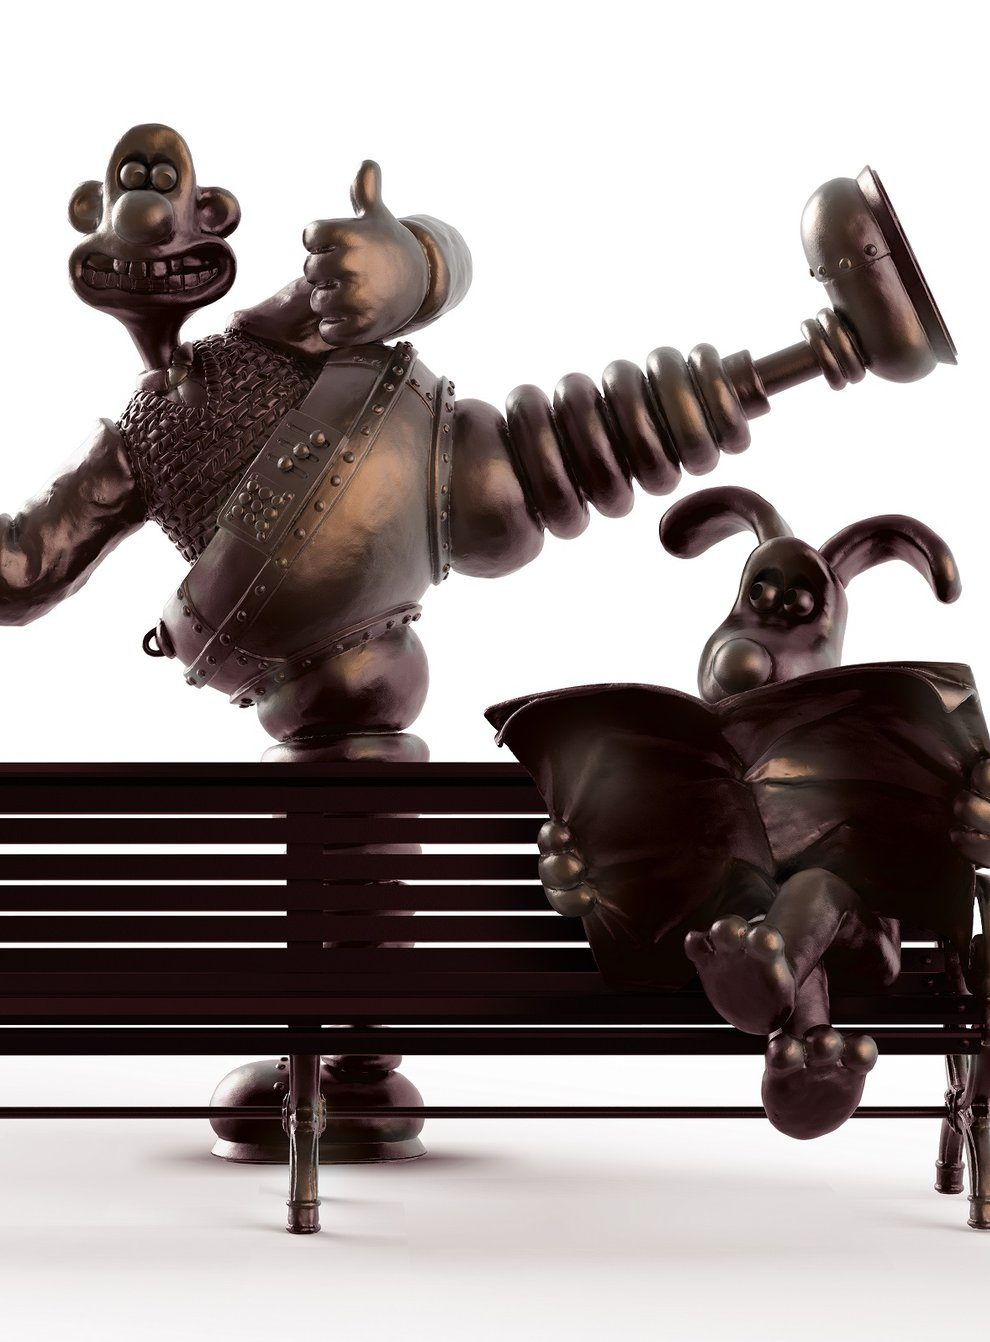 The proposed Wallace and Gromit statue which will be unveiled outside Preston Markets in the home town of Nick Park, who created the characters